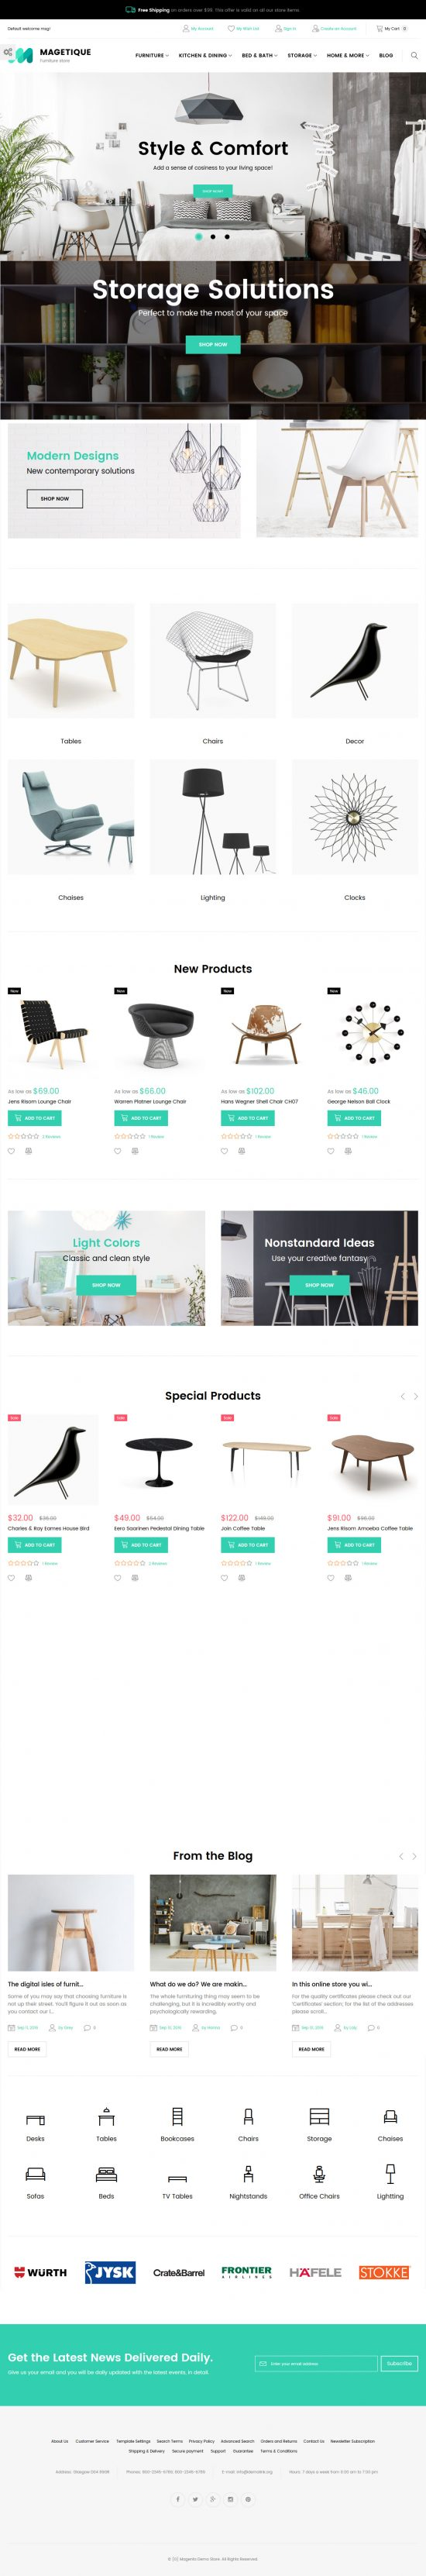 magetique magento 2 theme 01 550x3324 - Magetique Furniture Magento 2 Theme